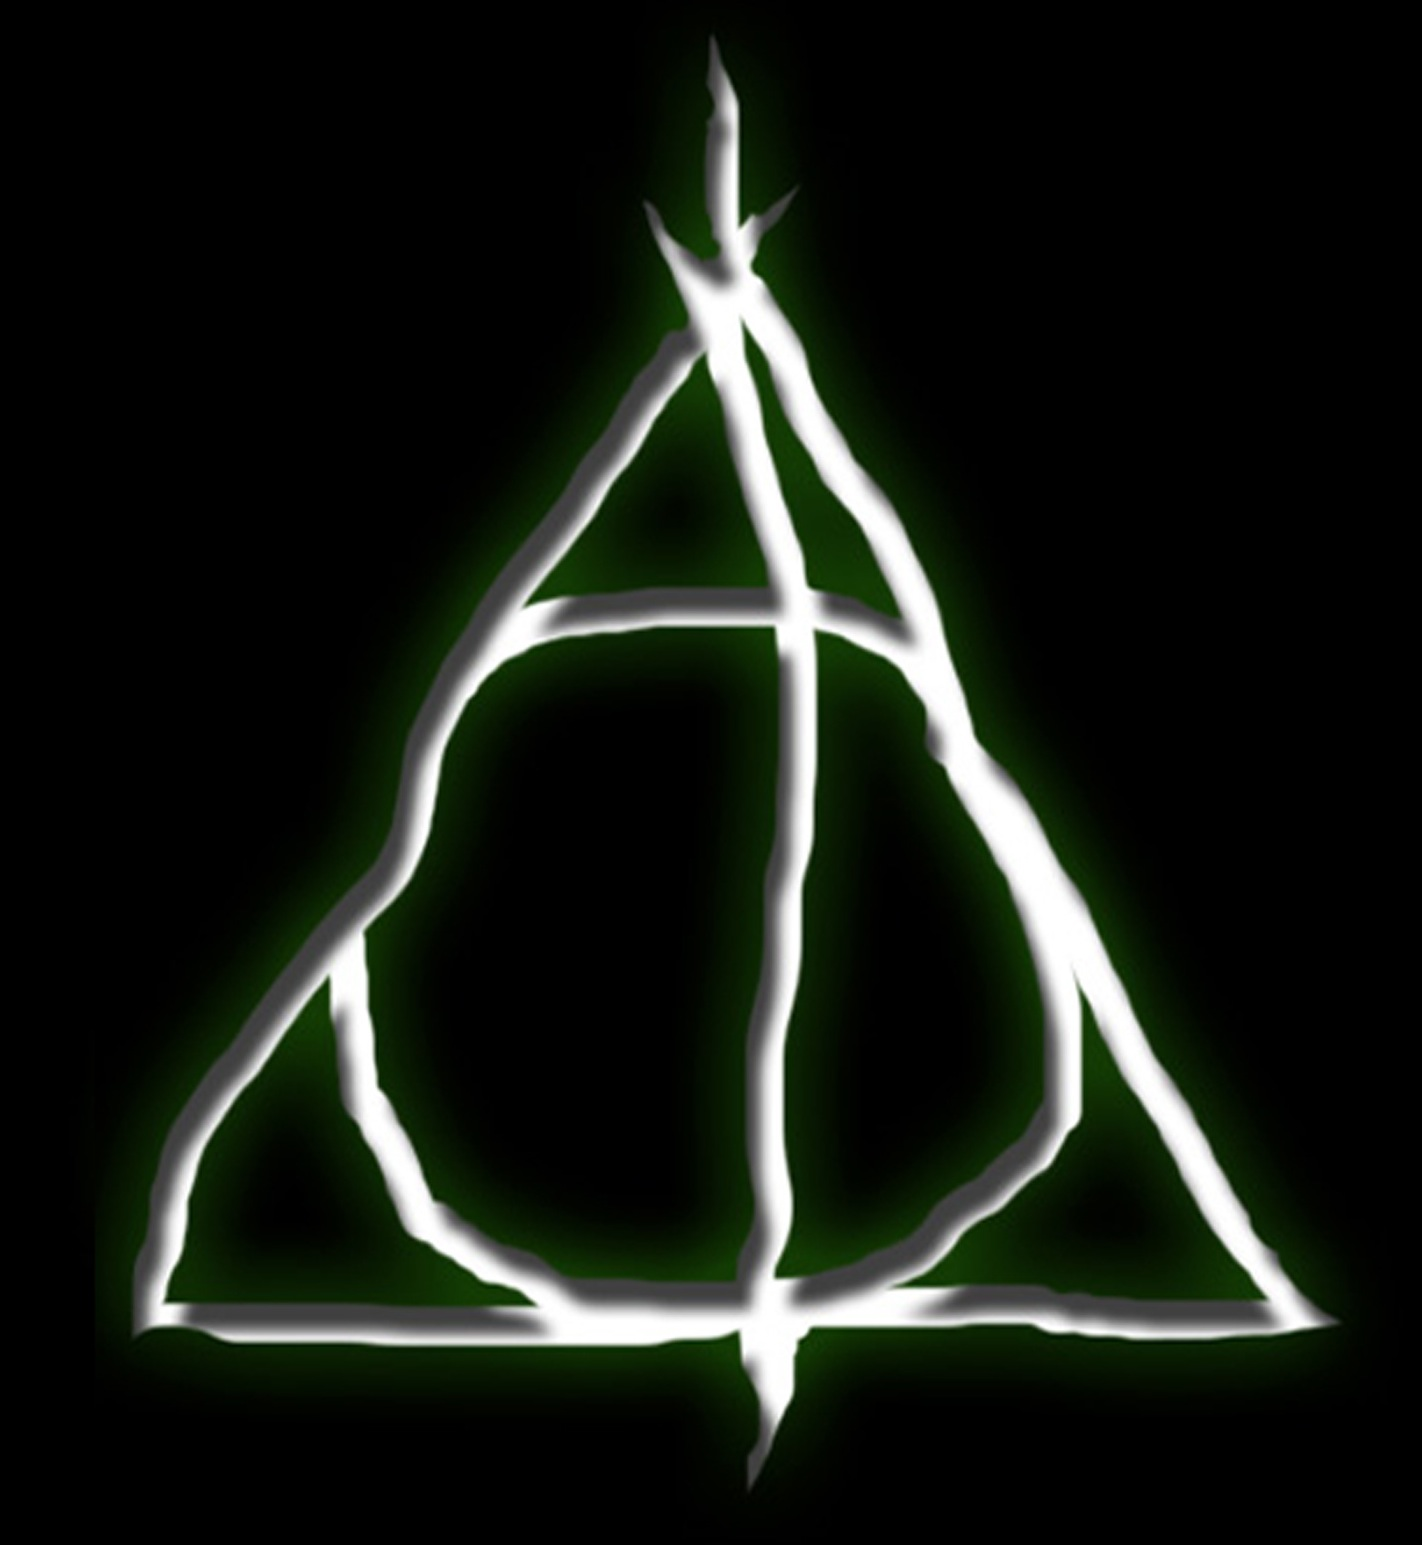 OBSERVATIONS: Harry Potter and the Deathly Hallows, Part 1